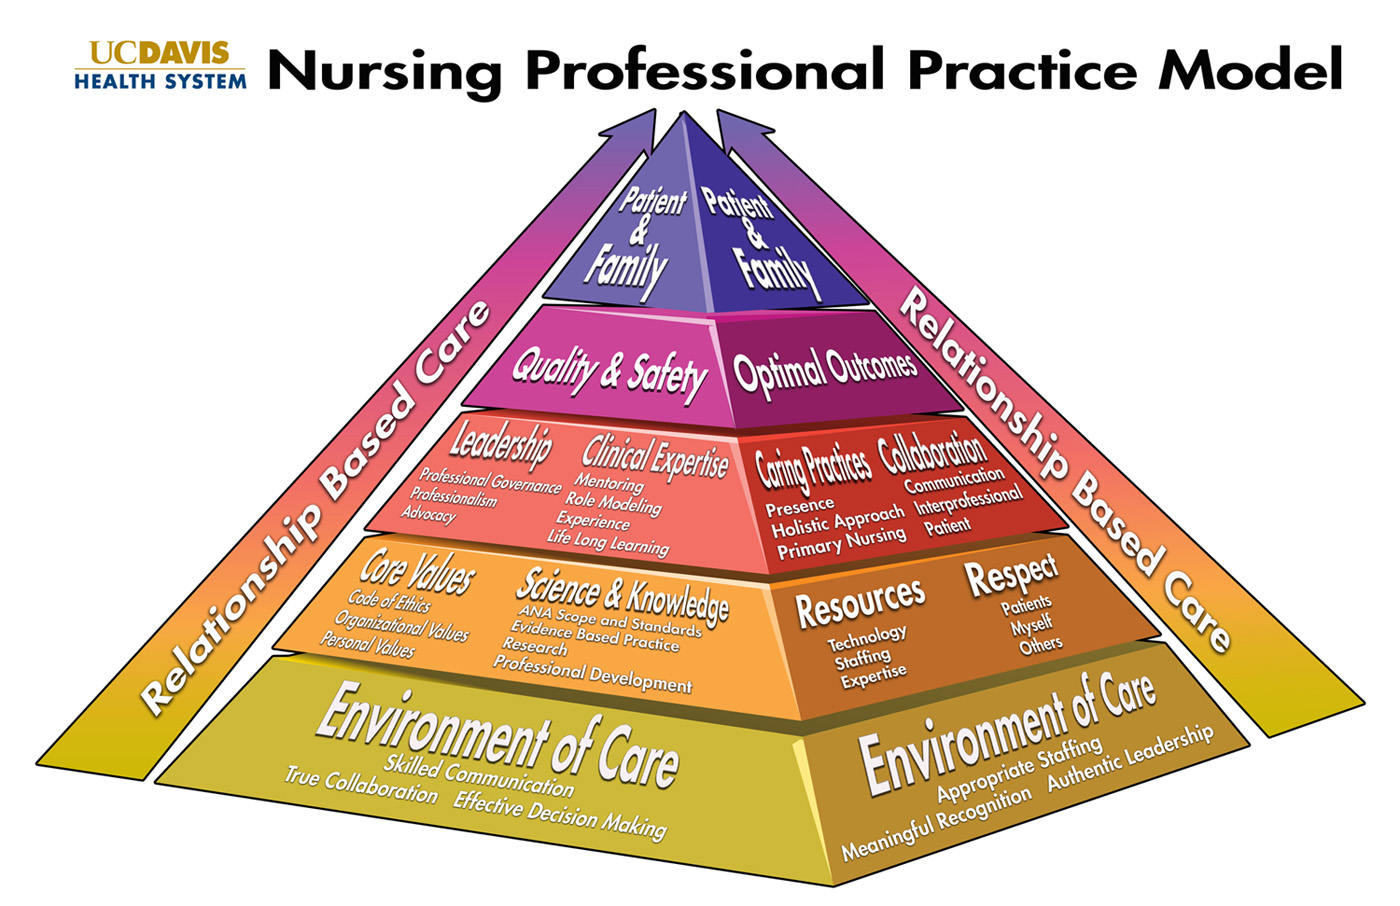 professionalism in nursing Start studying professionalism in nursing, ppt lecture learn vocabulary, terms, and more with flashcards, games, and other study tools.